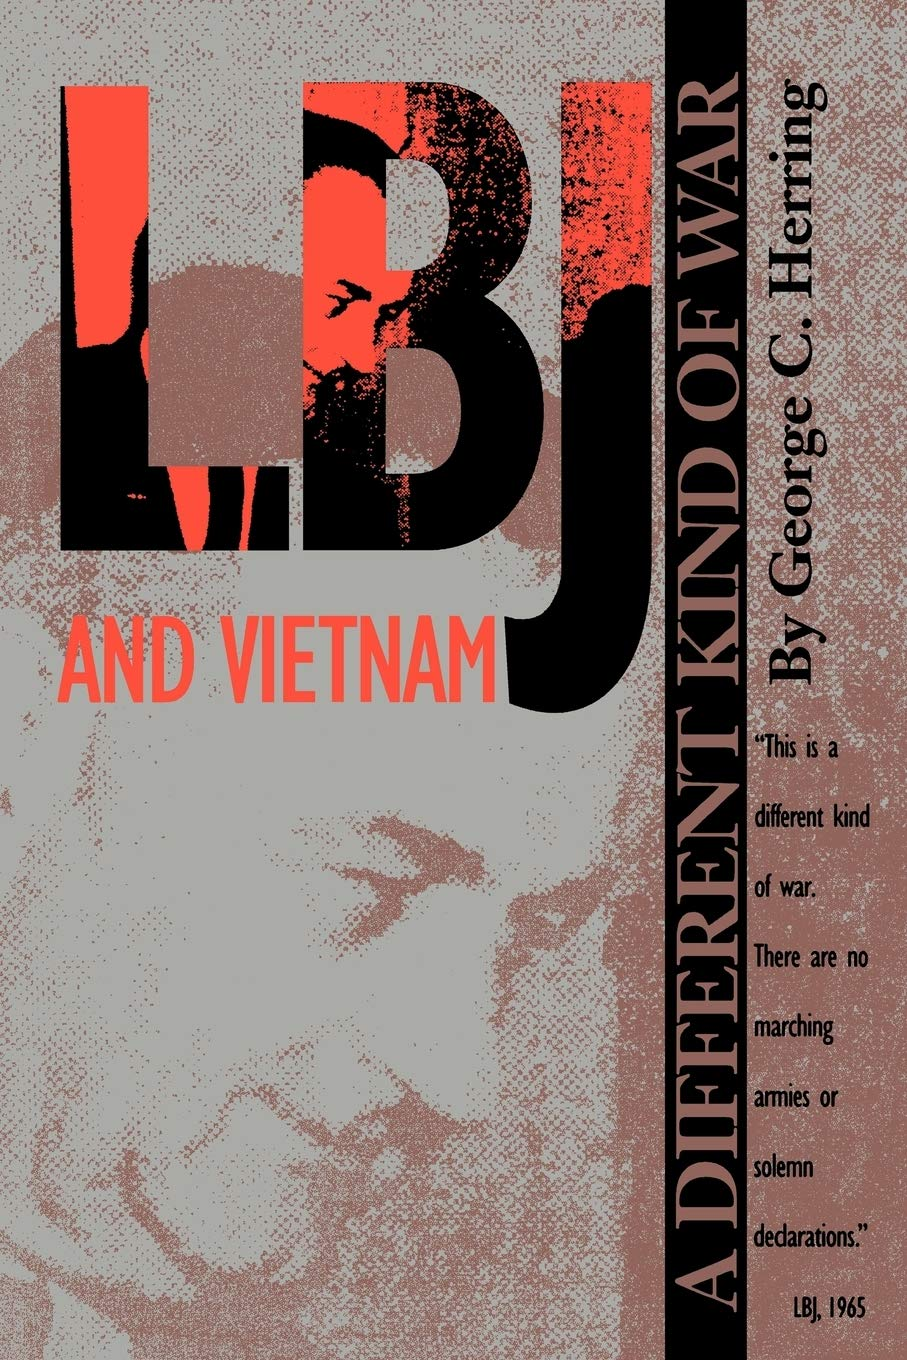 Lbj And Vietnam A Different Kind Of War Administrative History Of The Johnson Presidency Series Herring George C Redford Emmette S Anderson James E 9780292731073 Amazon Com Books